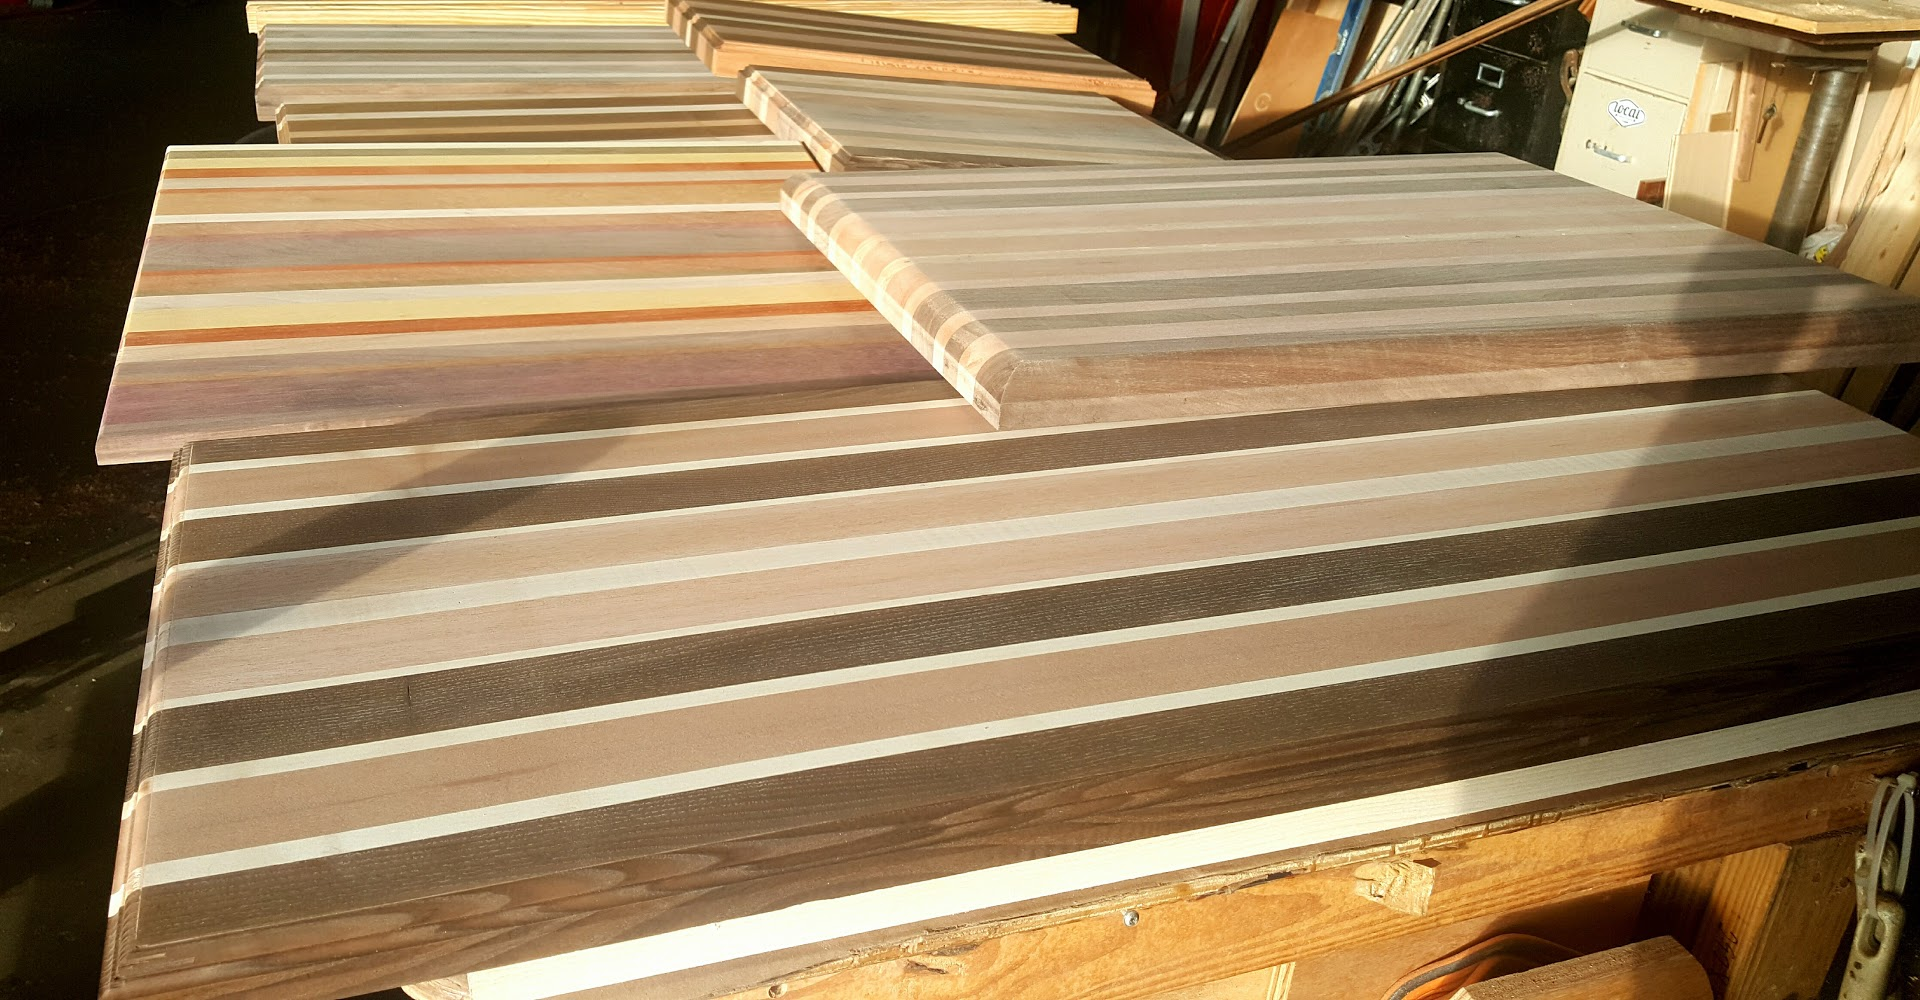 Wood Cutting Boards Anderson Lumber